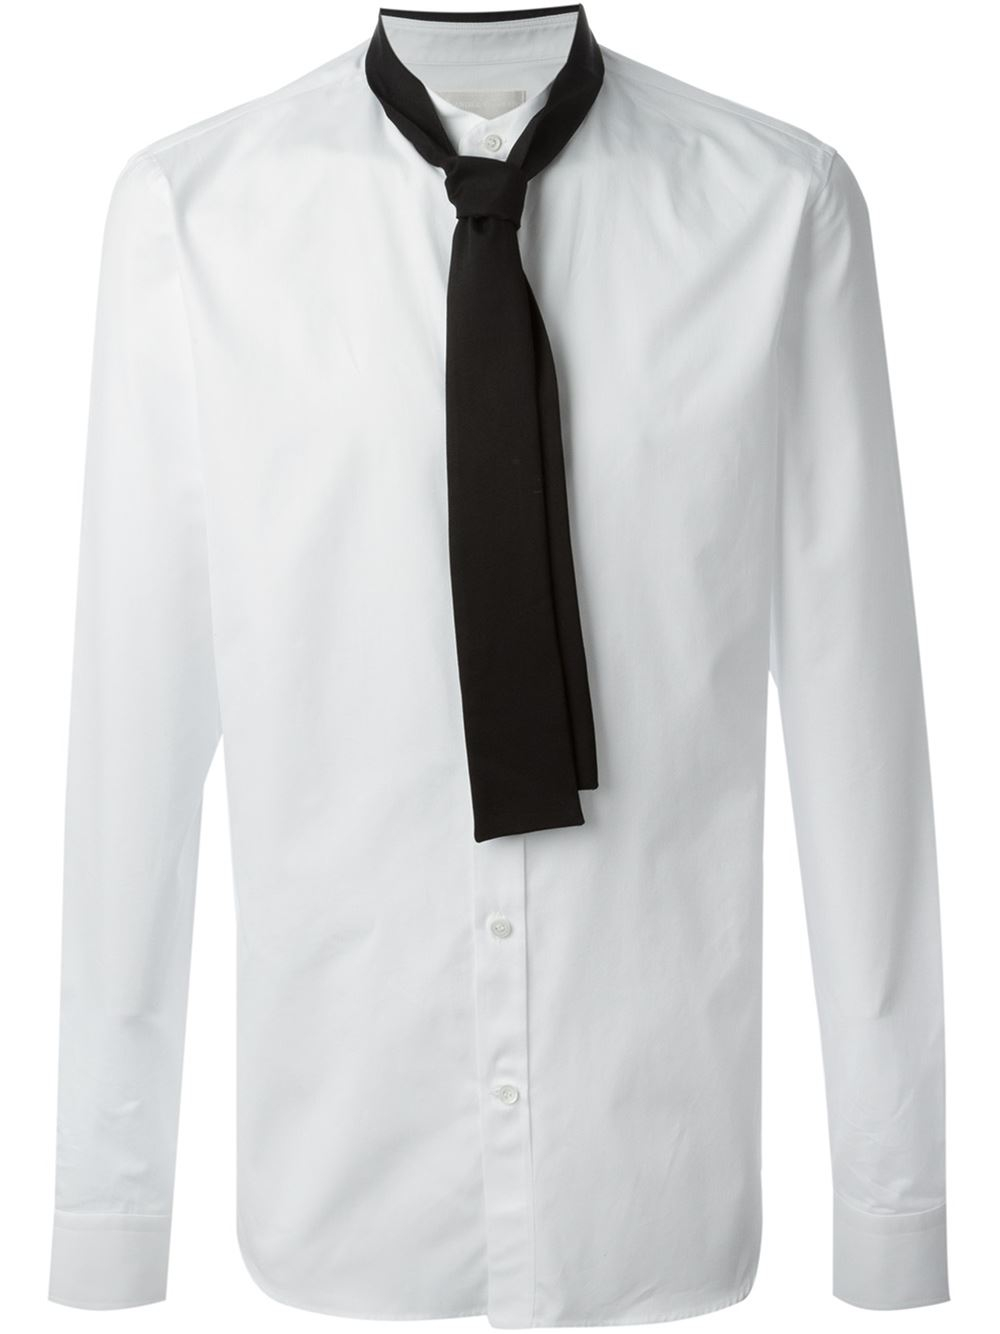 92aa142c4a9f Alexander McQueen Tie Detail Shirt in White for Men - Lyst